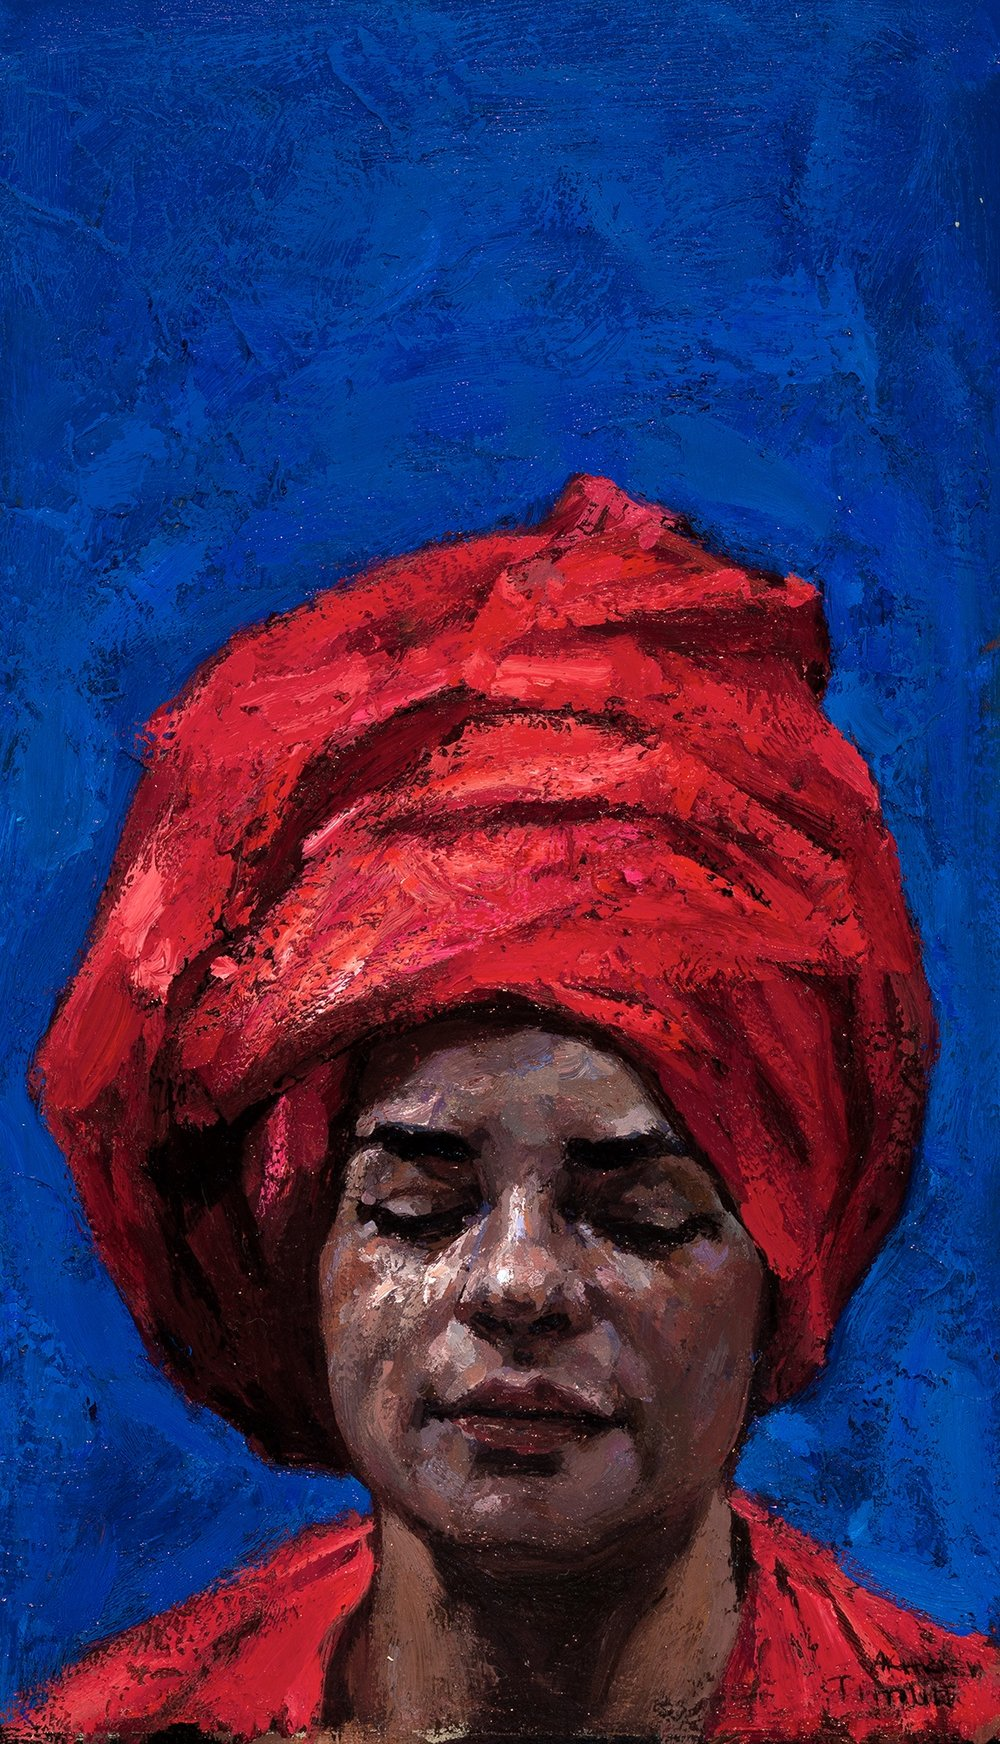 Blue and Red, but Mostly Blue Size: 6 x 9,75, Oil on Linen Panel, Price, Reatil, Framed: $1200. Year: 2016, Available through: Paul & Scott Gallery